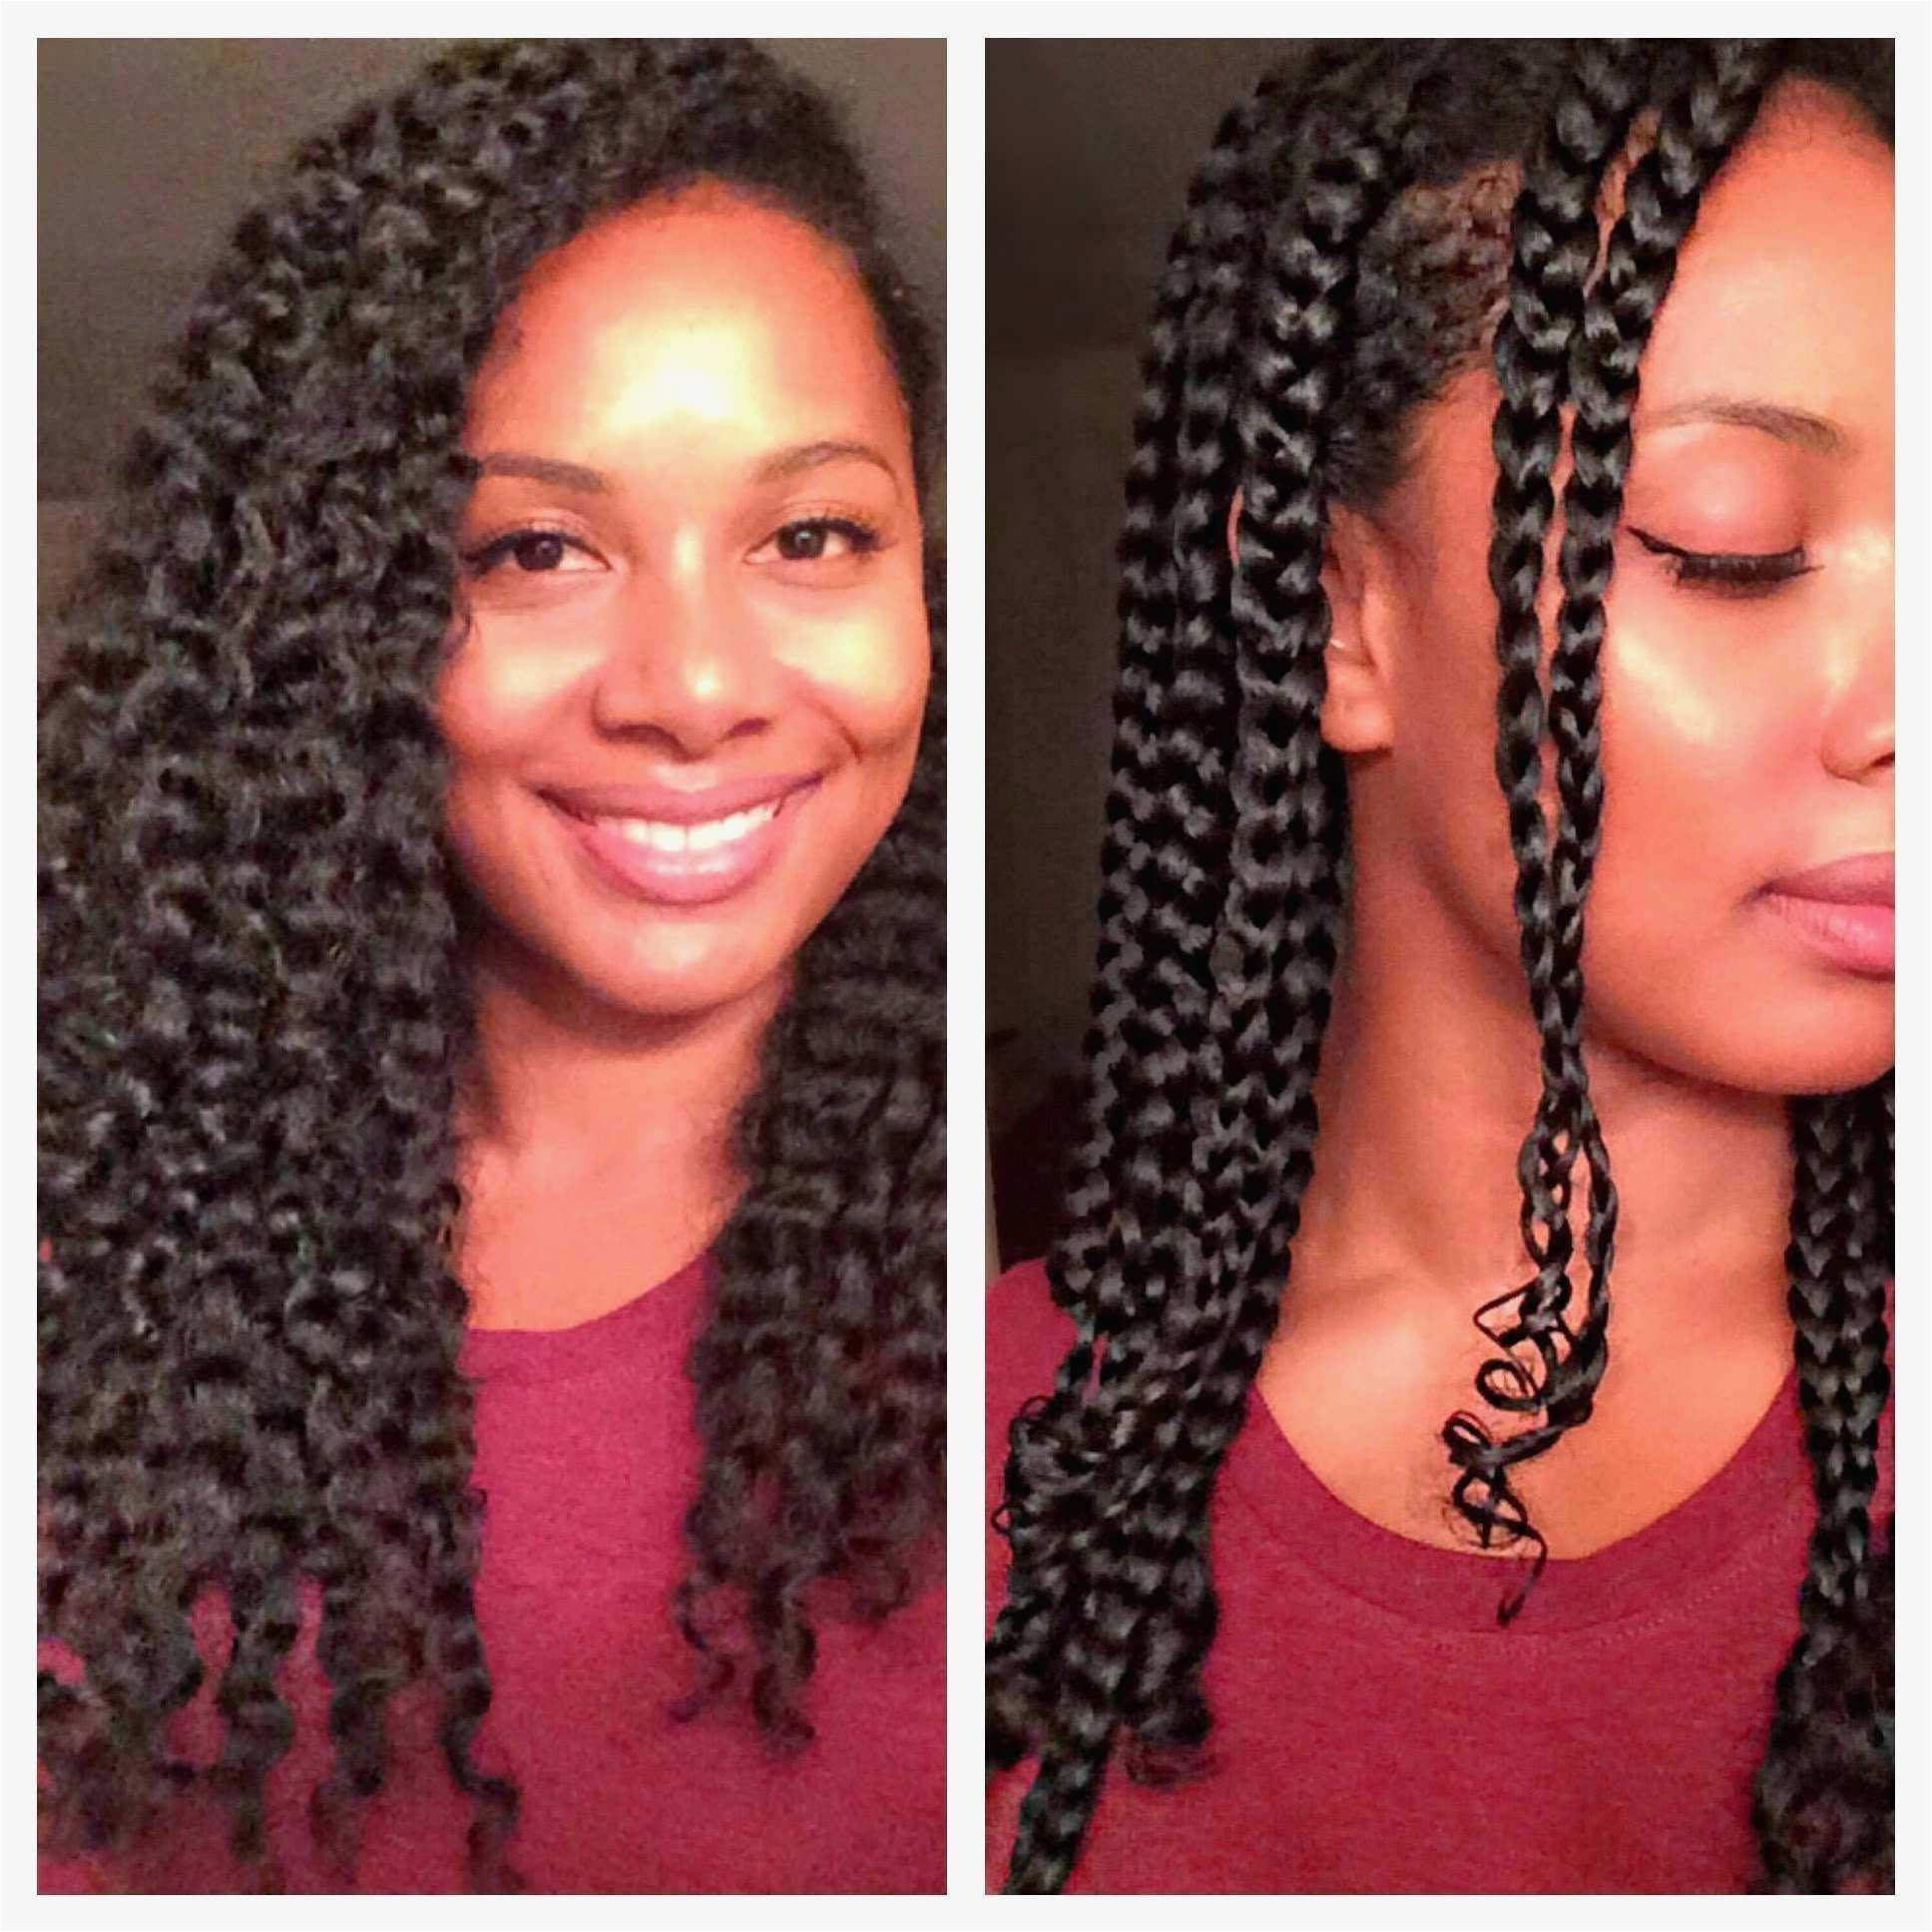 Exceptional Common Micro Locs Crochet Braids » Accentshelties With Regard To Most Current Curly Crochet Micro Braid Hairstyles (Gallery 12 of 20)